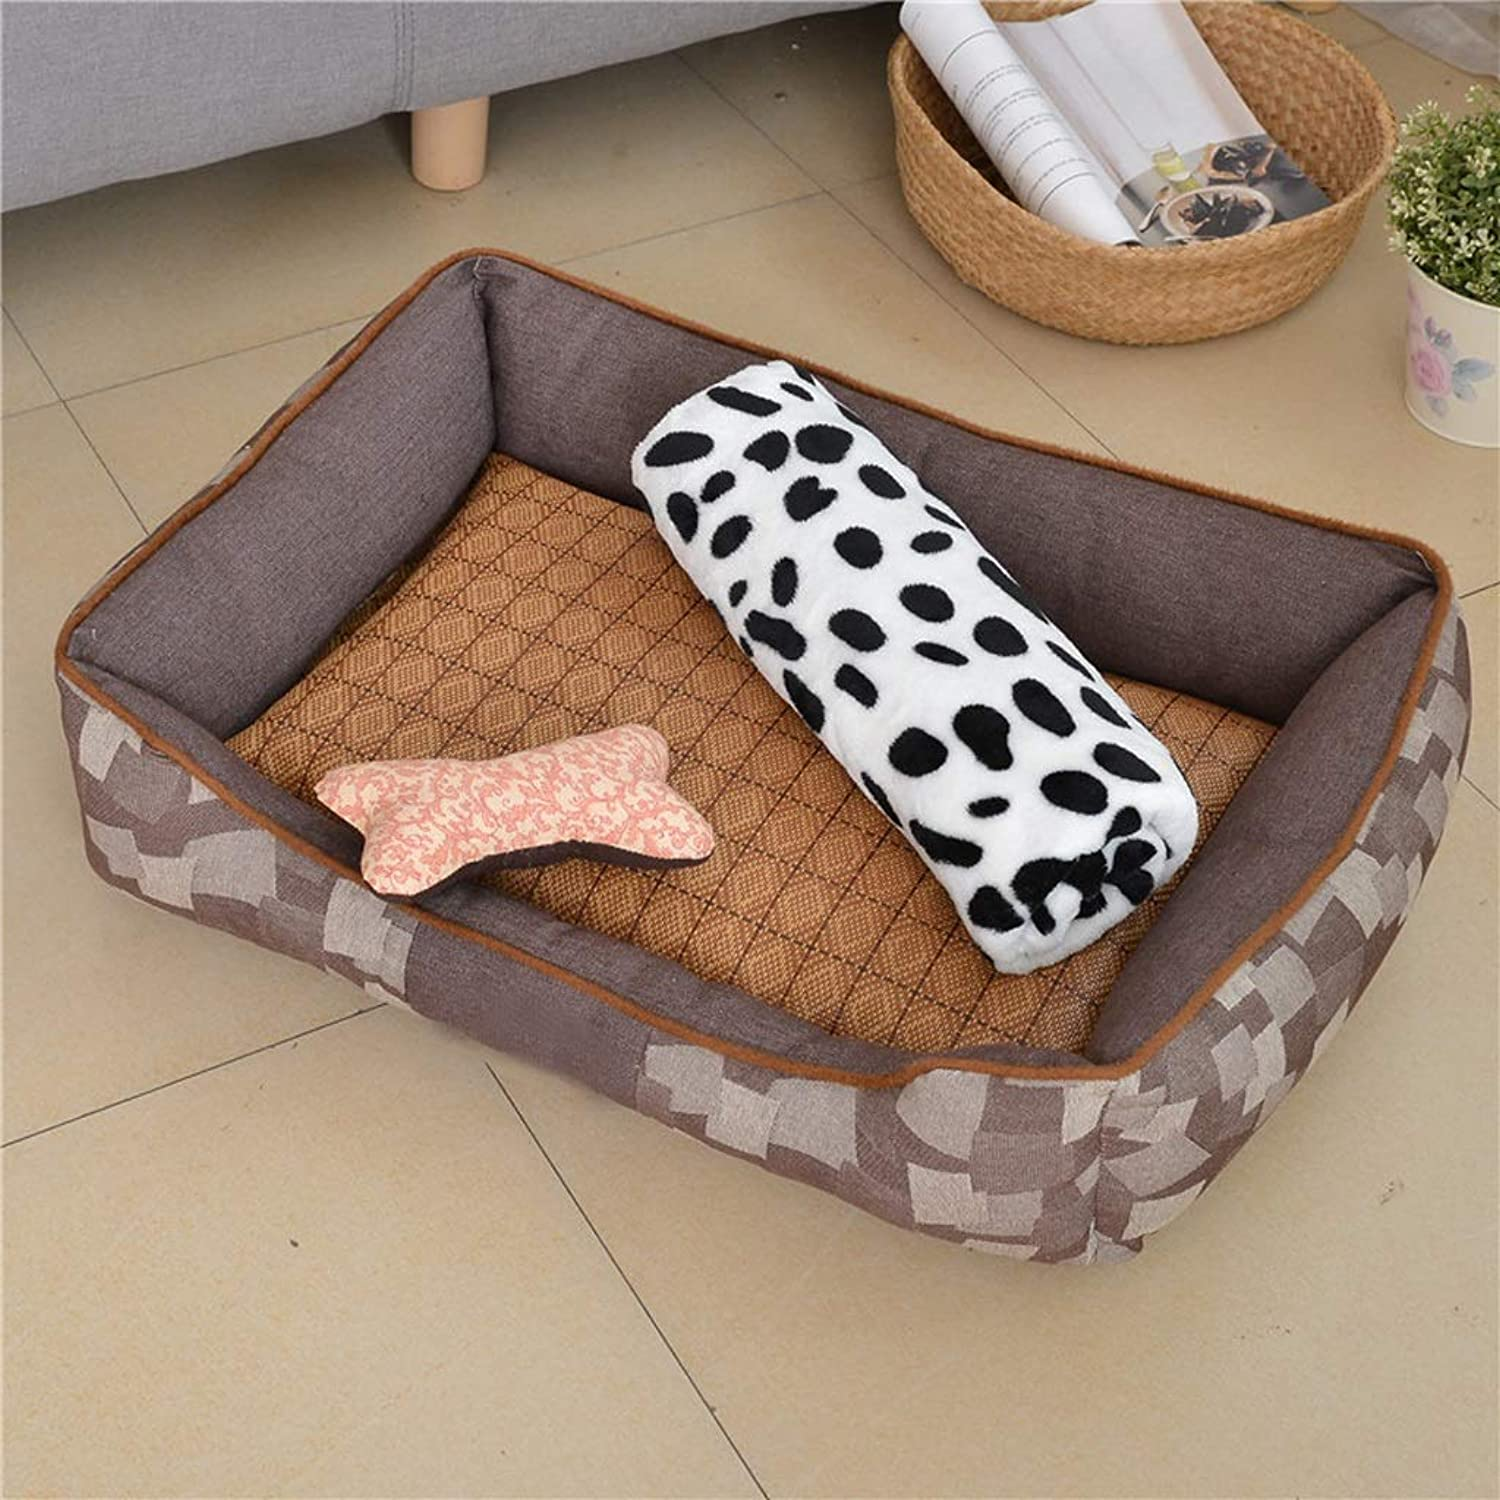 66ccwwww Pet bed Kennel, washable autumn and winter Teddy pet mat dog bed supplies cat litter winter (color   D, Size   L)